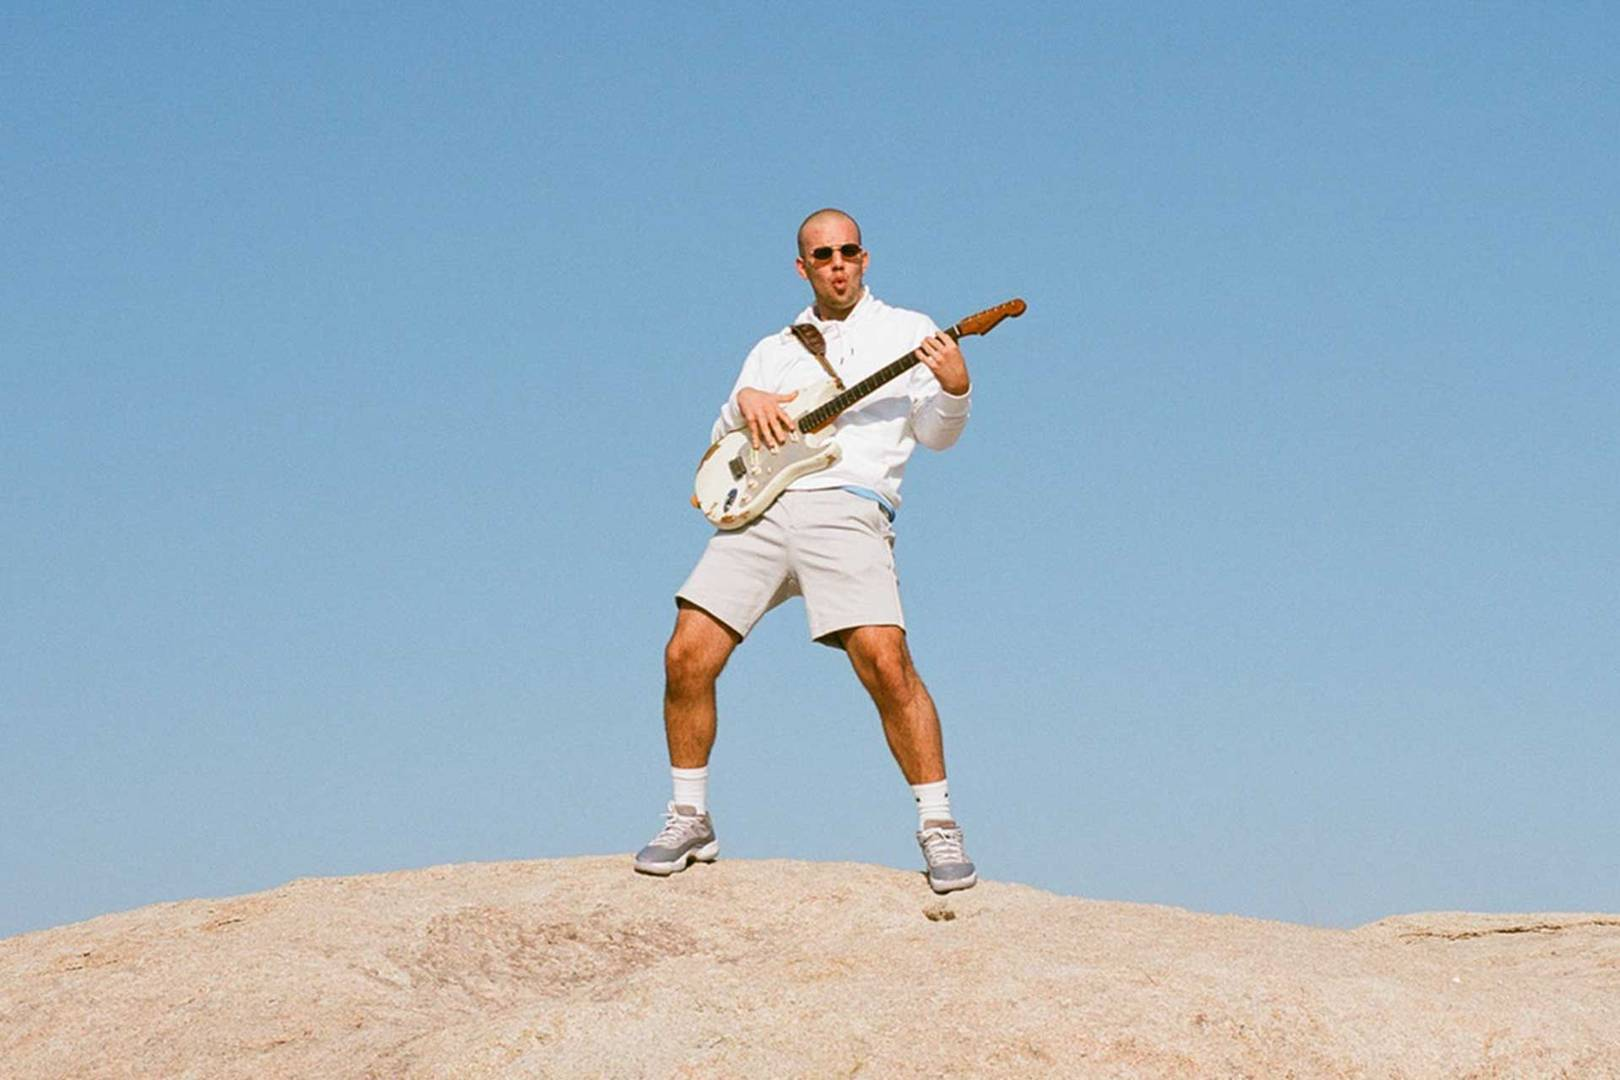 The Casual Tennis Fans Nostalgia For >> Mac Ayres Is The R B Music School Dropout Doing Things His Own Way